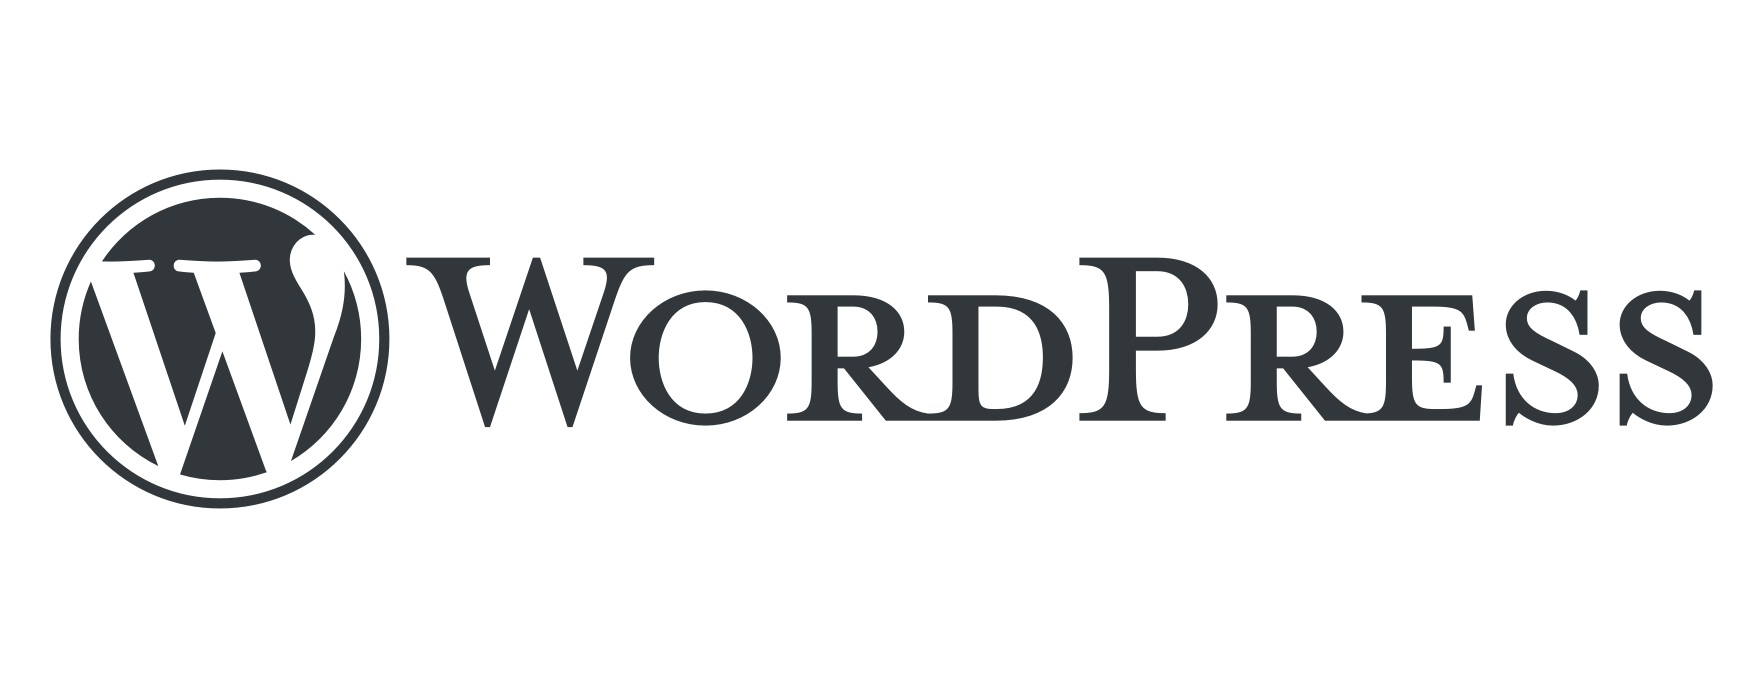 WordPress-logotype-standard.jpg